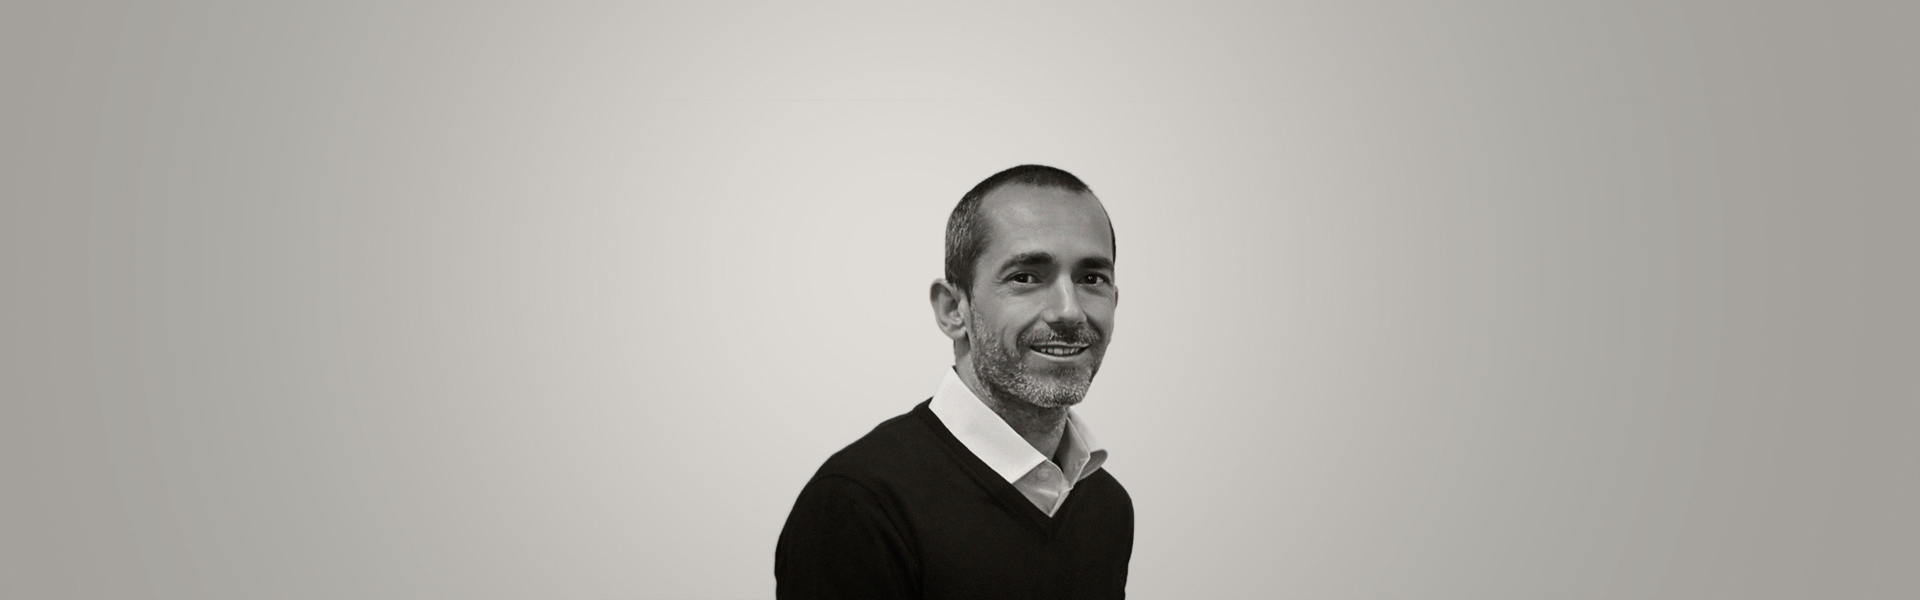 Nuno Soares | INOVA+ - Business Develpment Officer